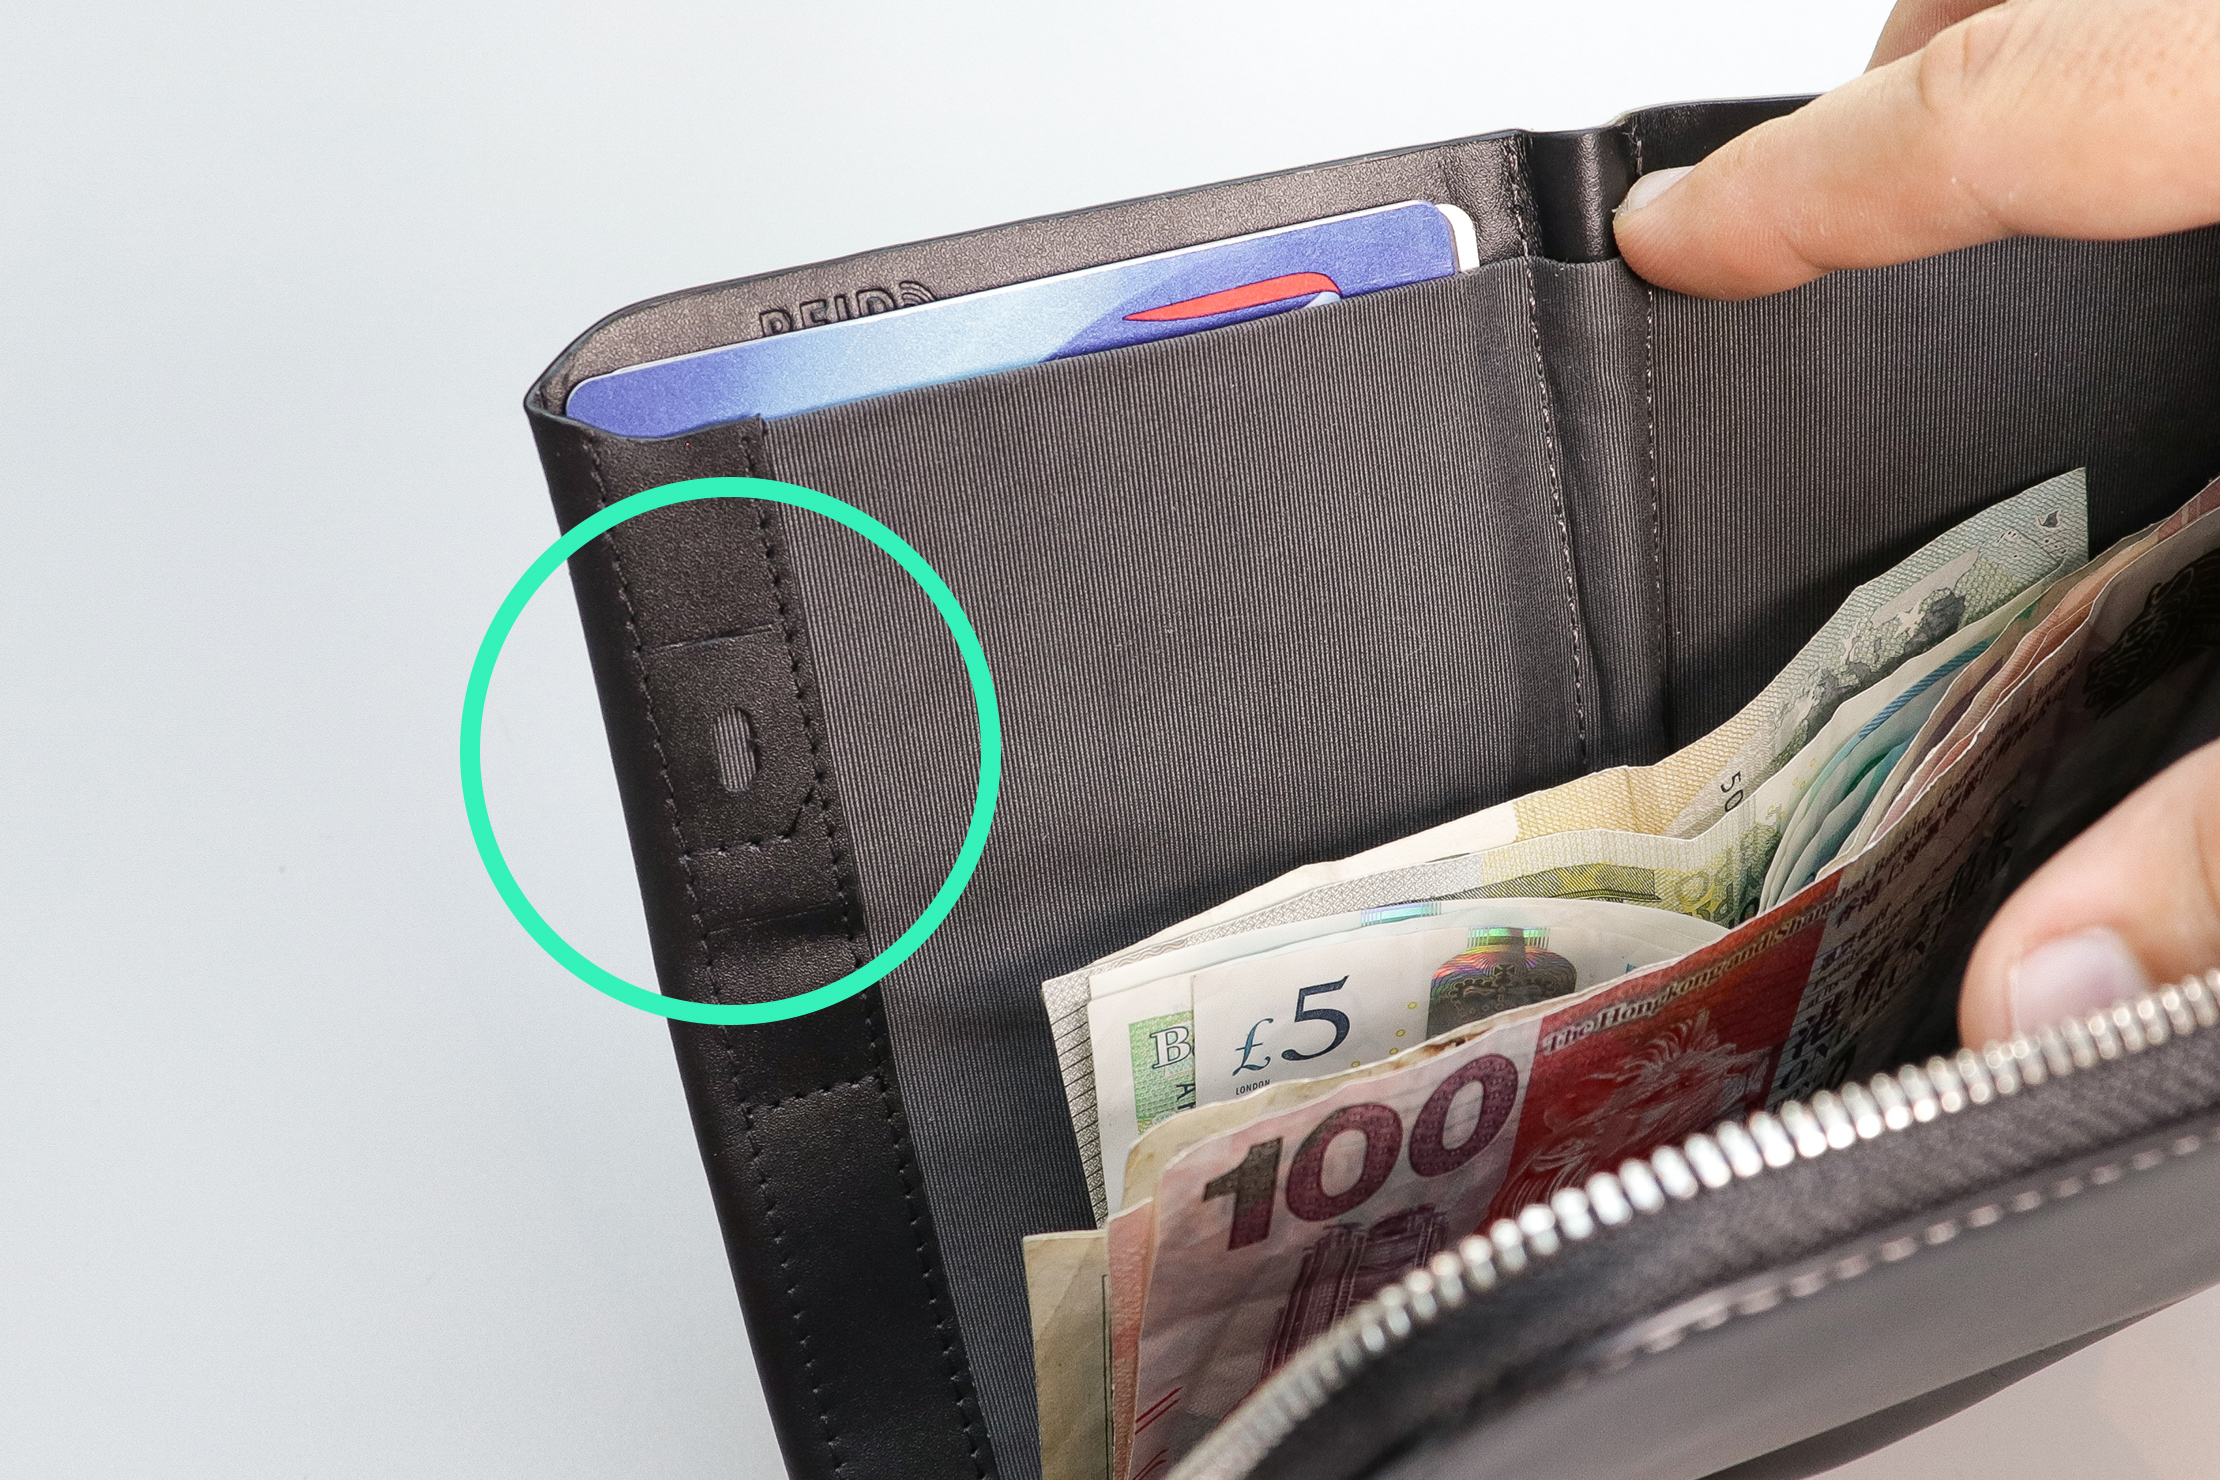 Bellroy Travel Folio SIM Card Holder